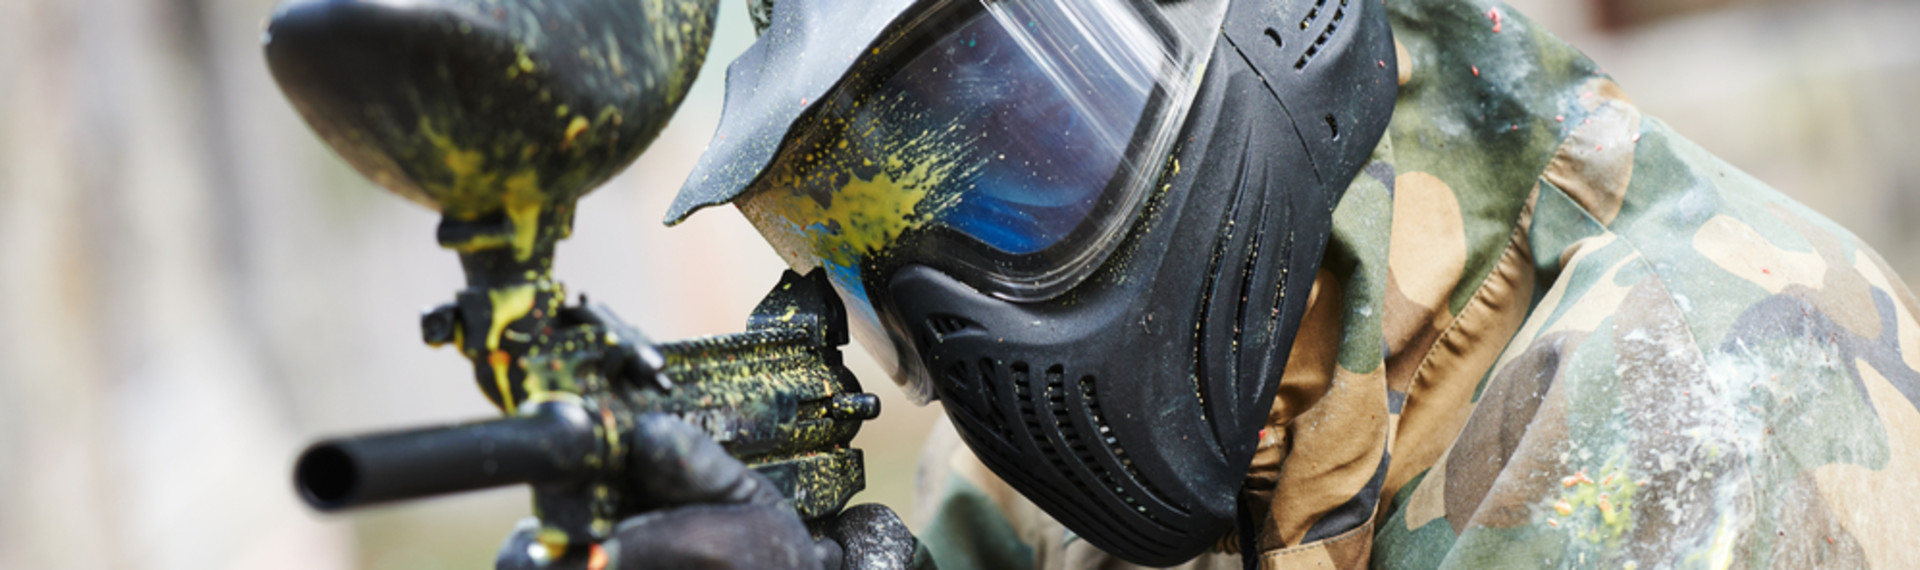 Paintball Hollandais à Amsterdam | Pissup ✪ | LE Site EVG